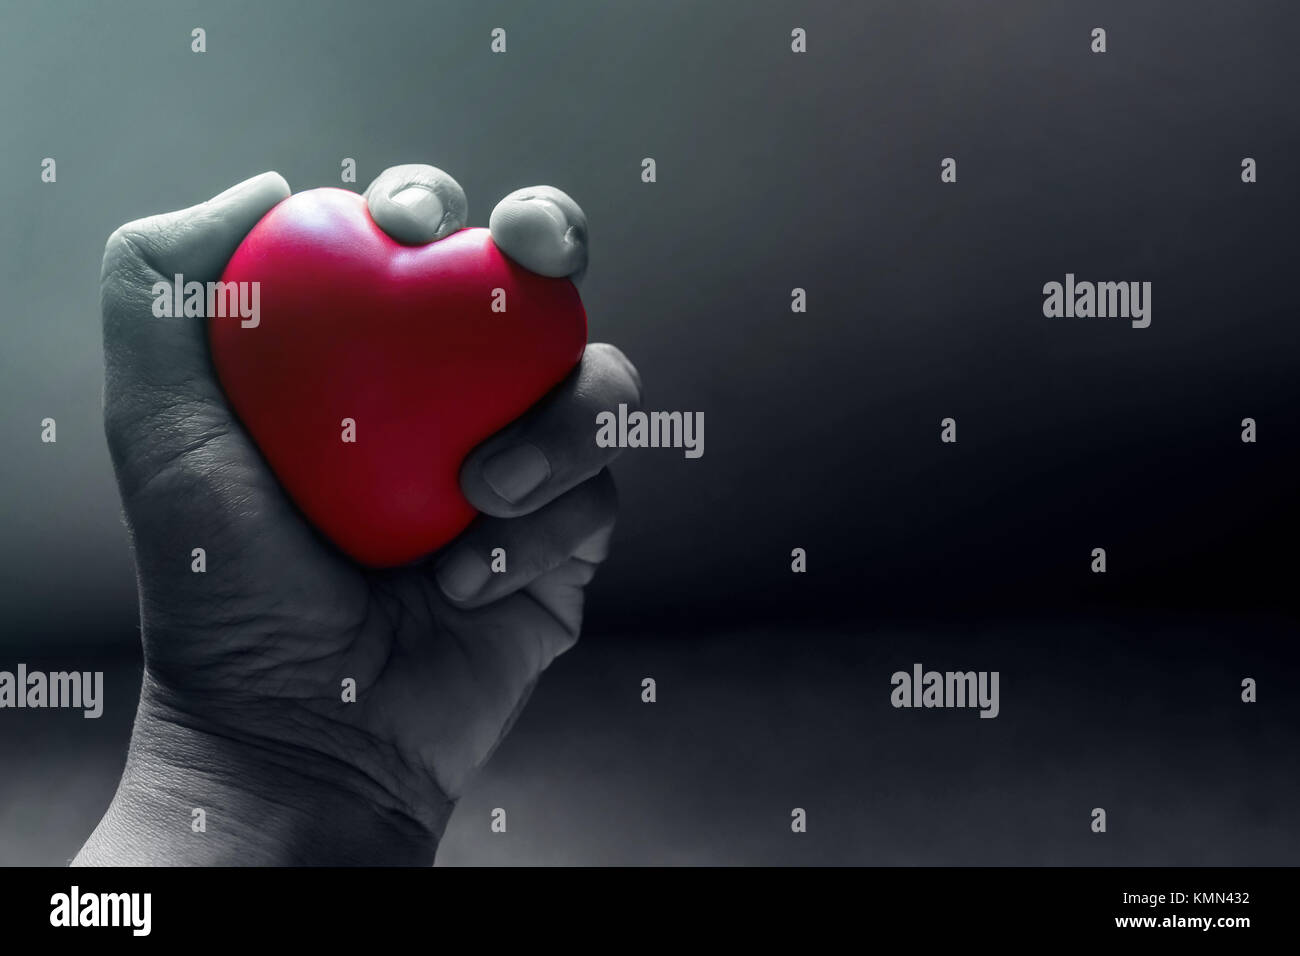 Love and Pain Concept, Hand Squeezing a Red Heart with Anger and Suffering in the Dark Light Room - Stock Image